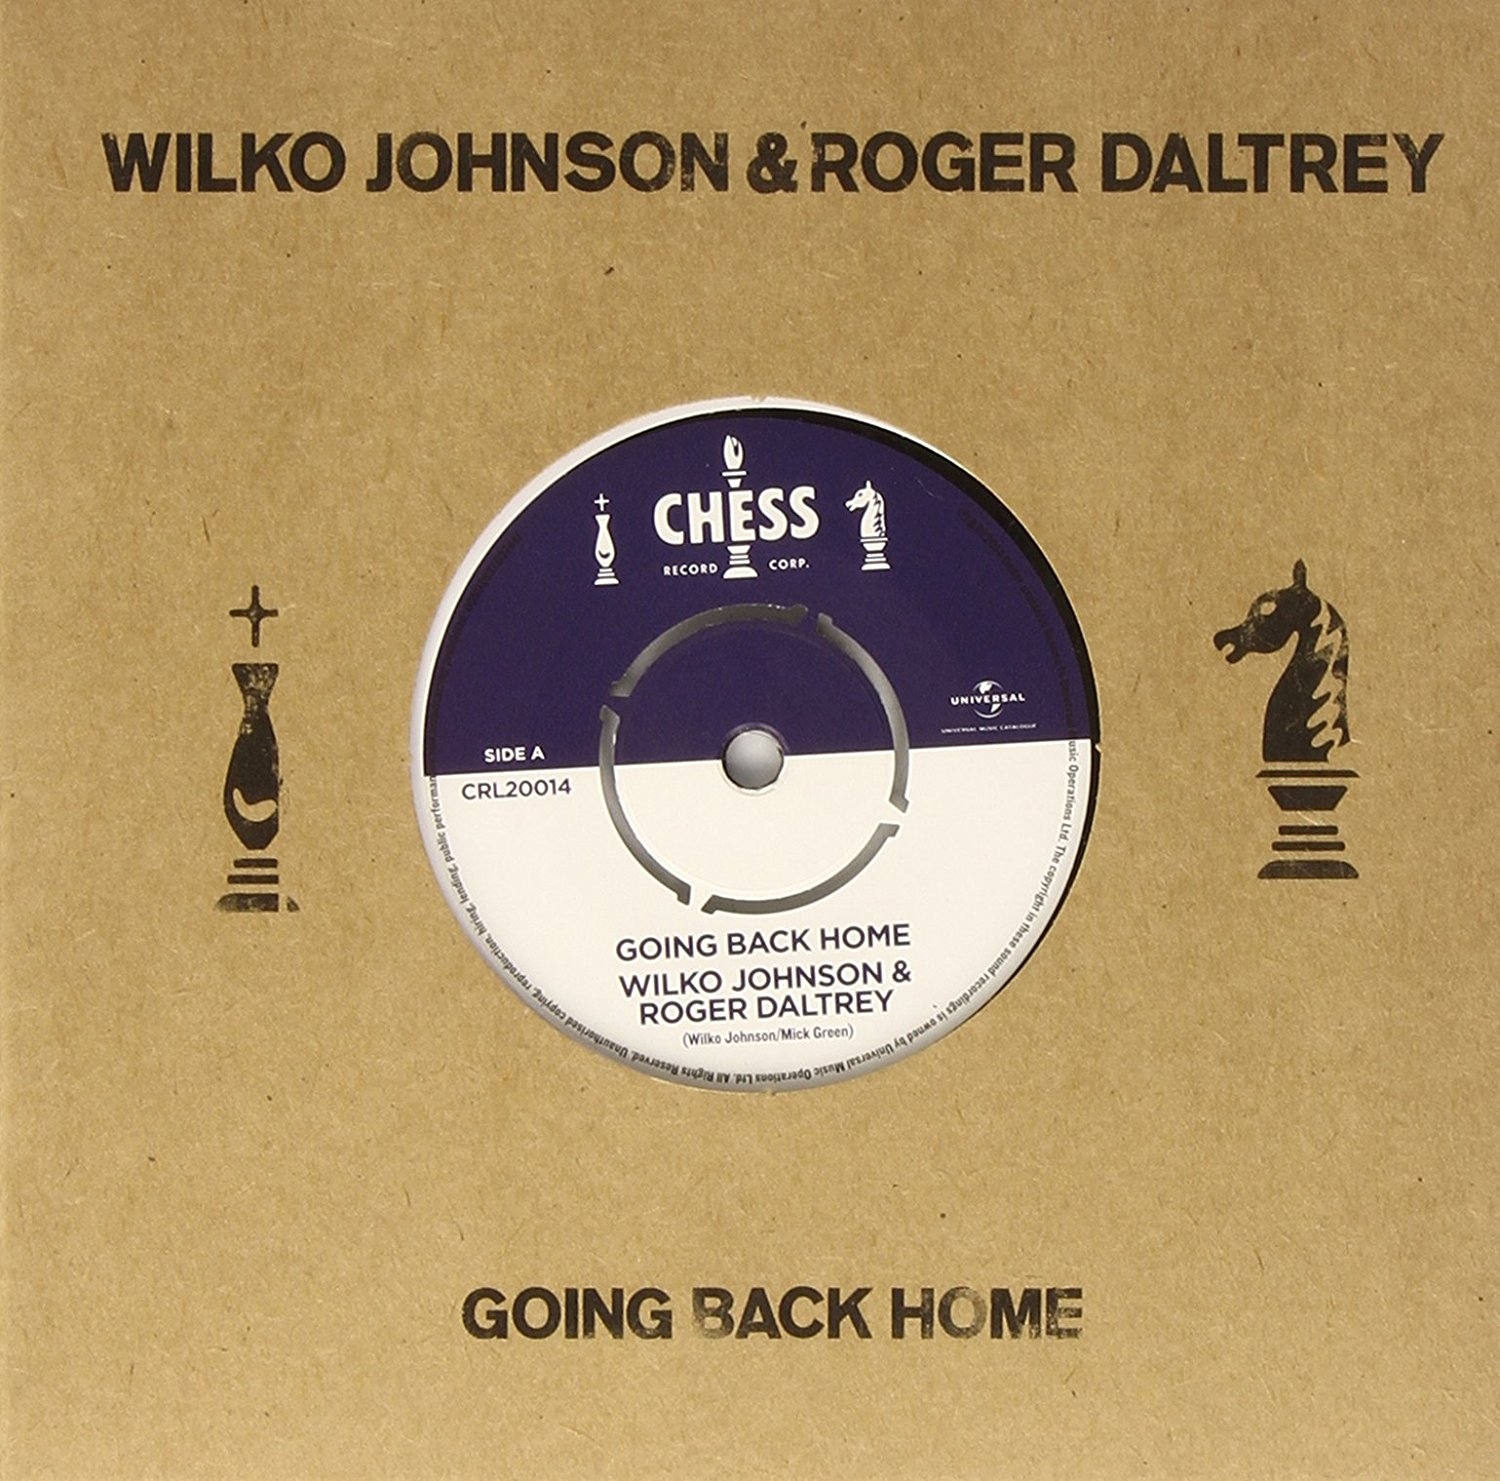 Wilko Johnson & Roger Daltrey - Going Back Home - Single [Vinyl]